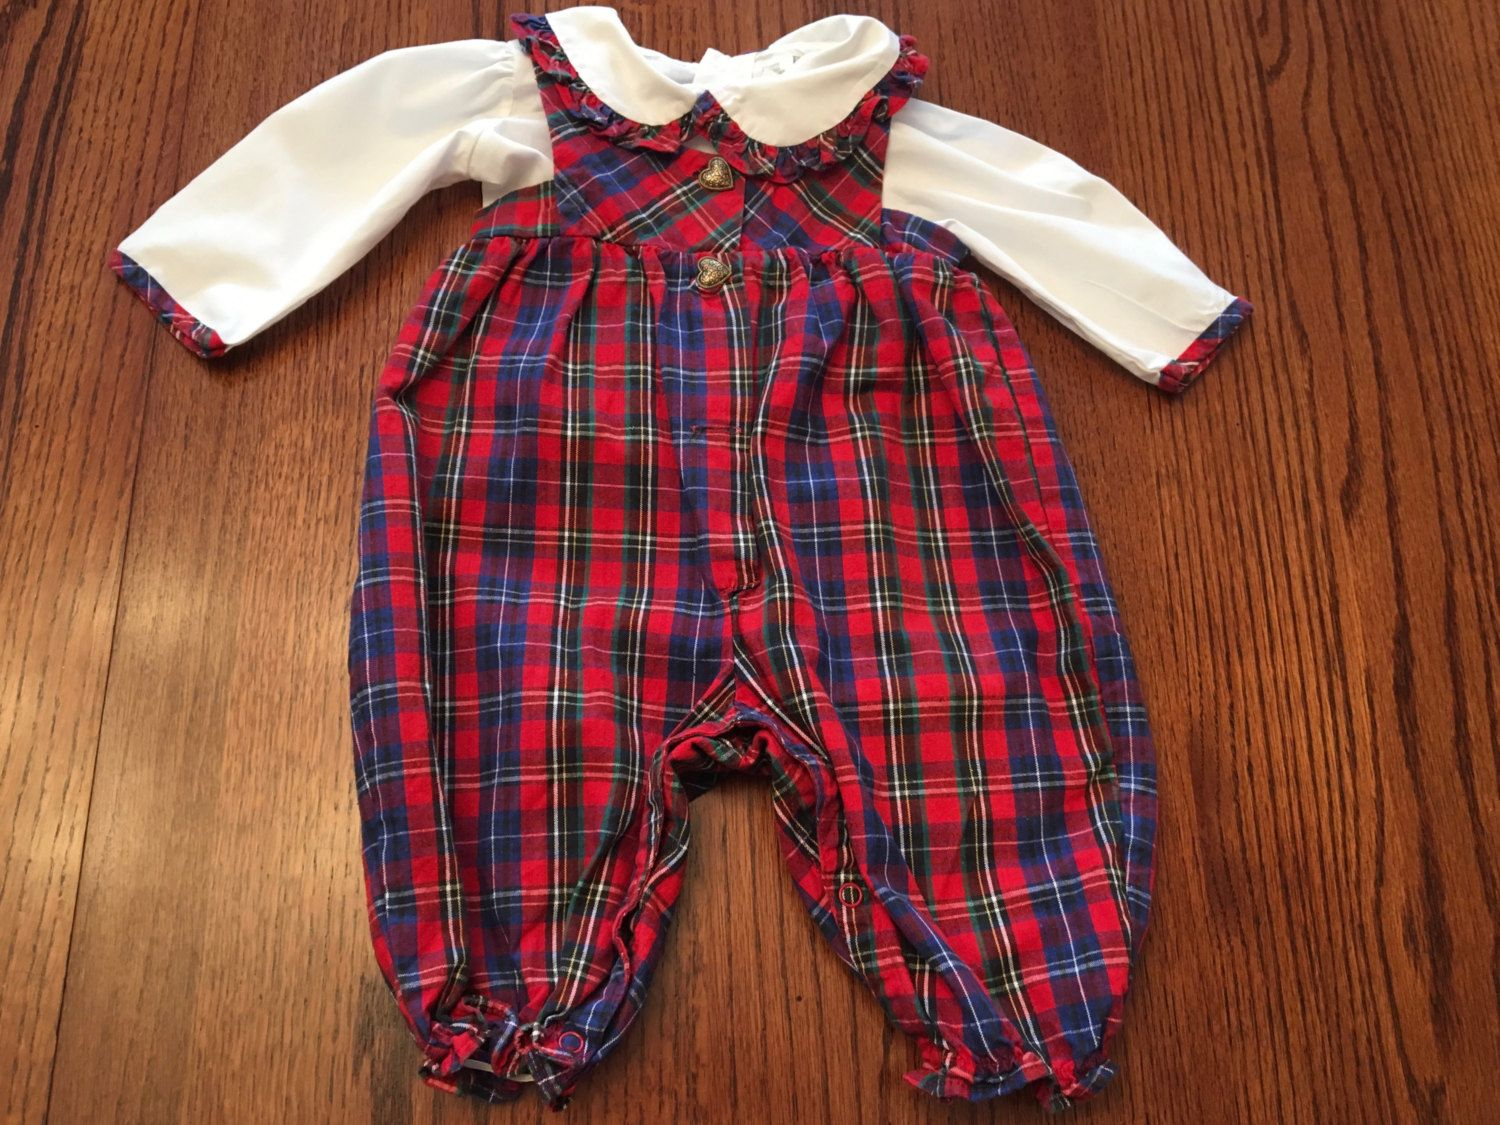 Plaid Overalls Outfit 6/9 Months by lishyloo on Etsy